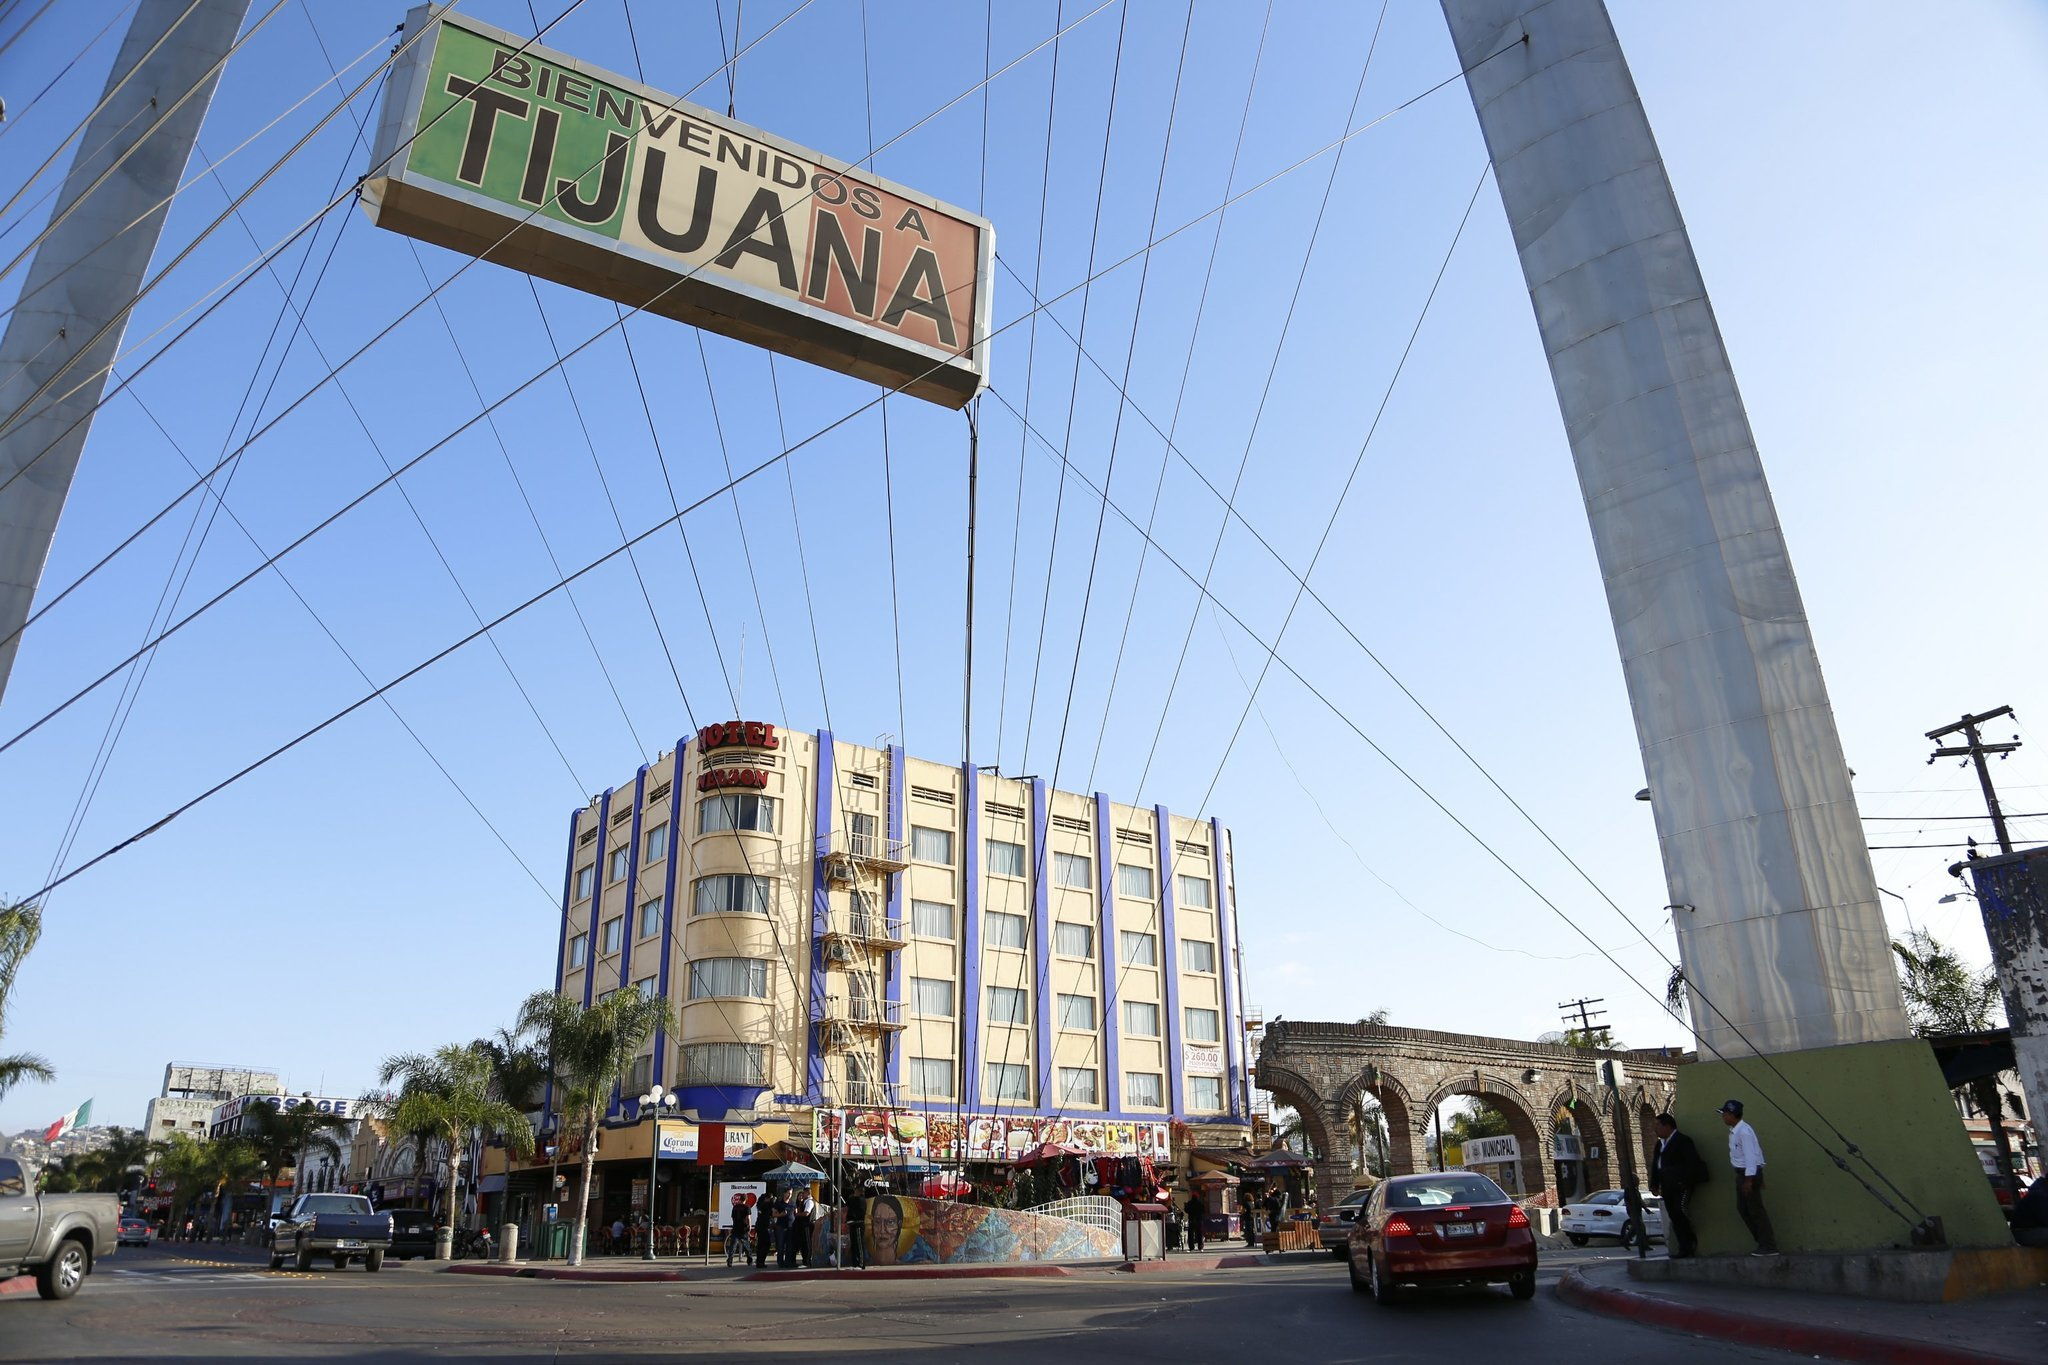 Tijuana tourism pitch flirts with oldest profession